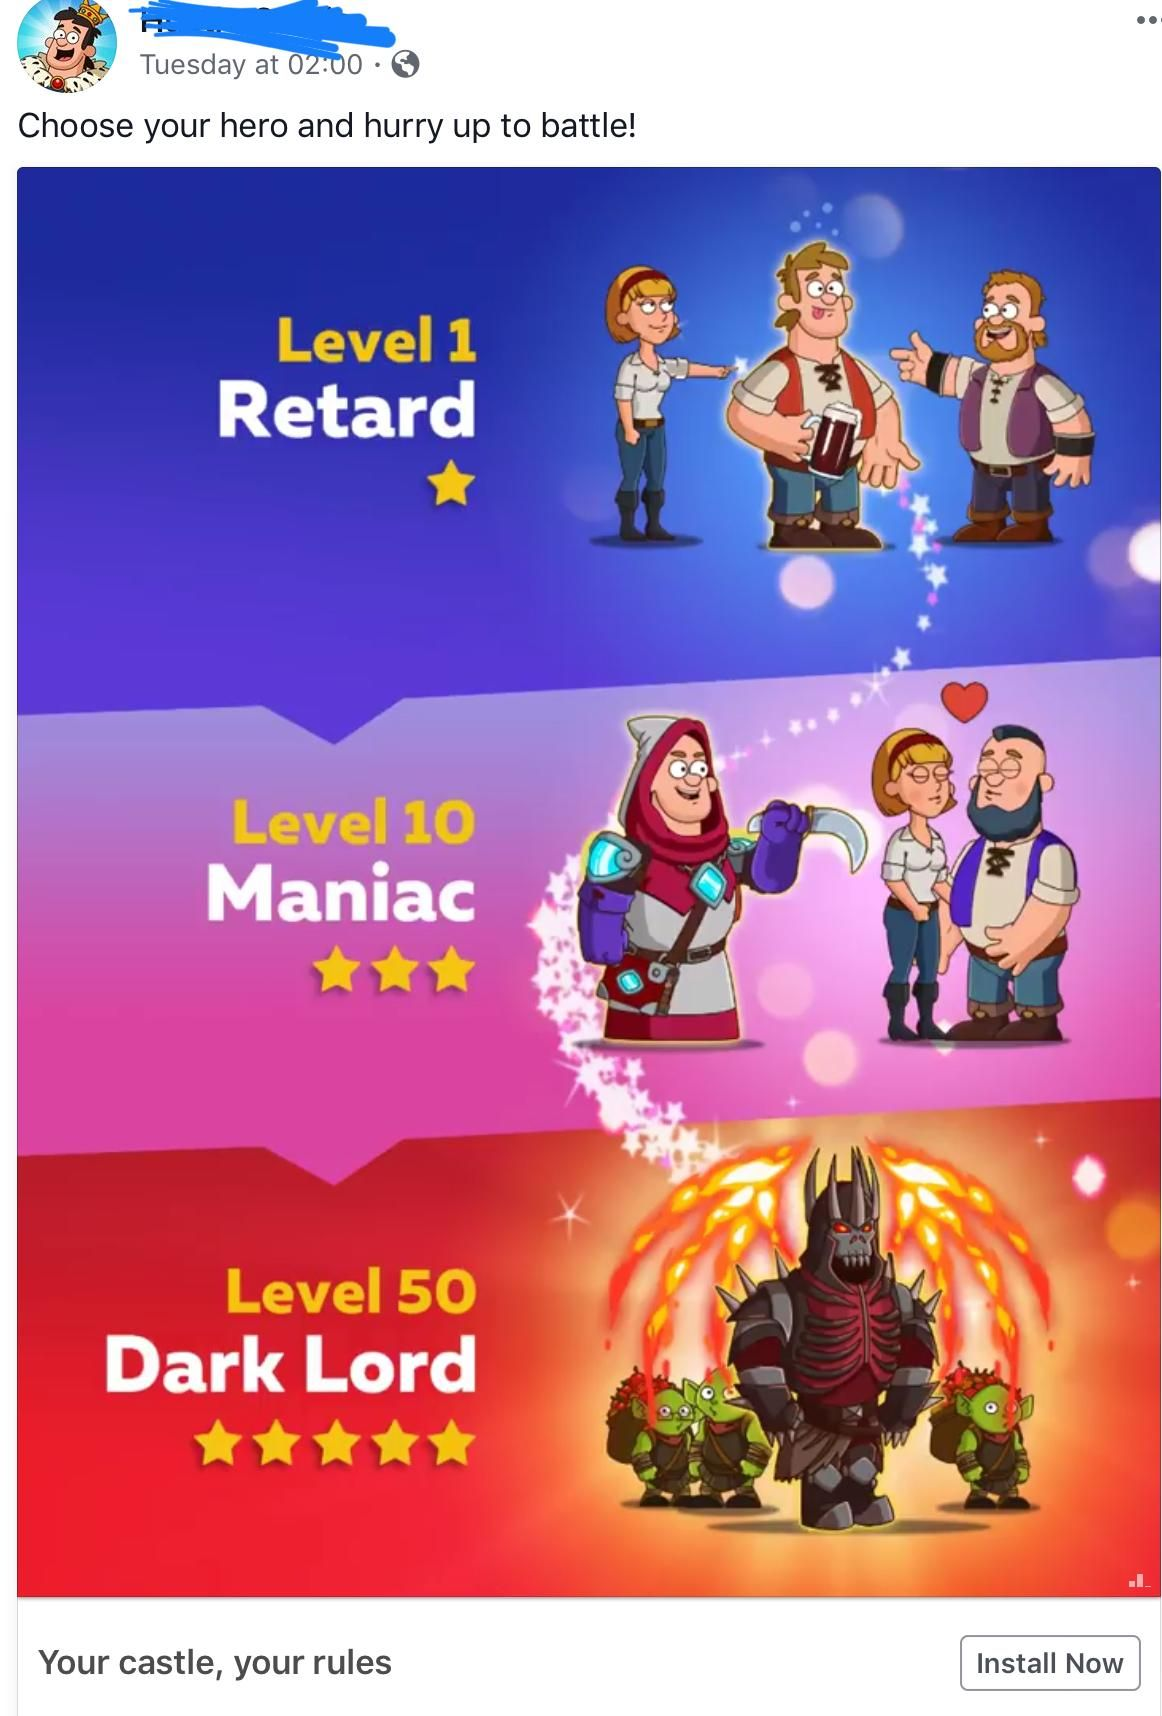 The collection of odd mobile game ads grows. Mobile game